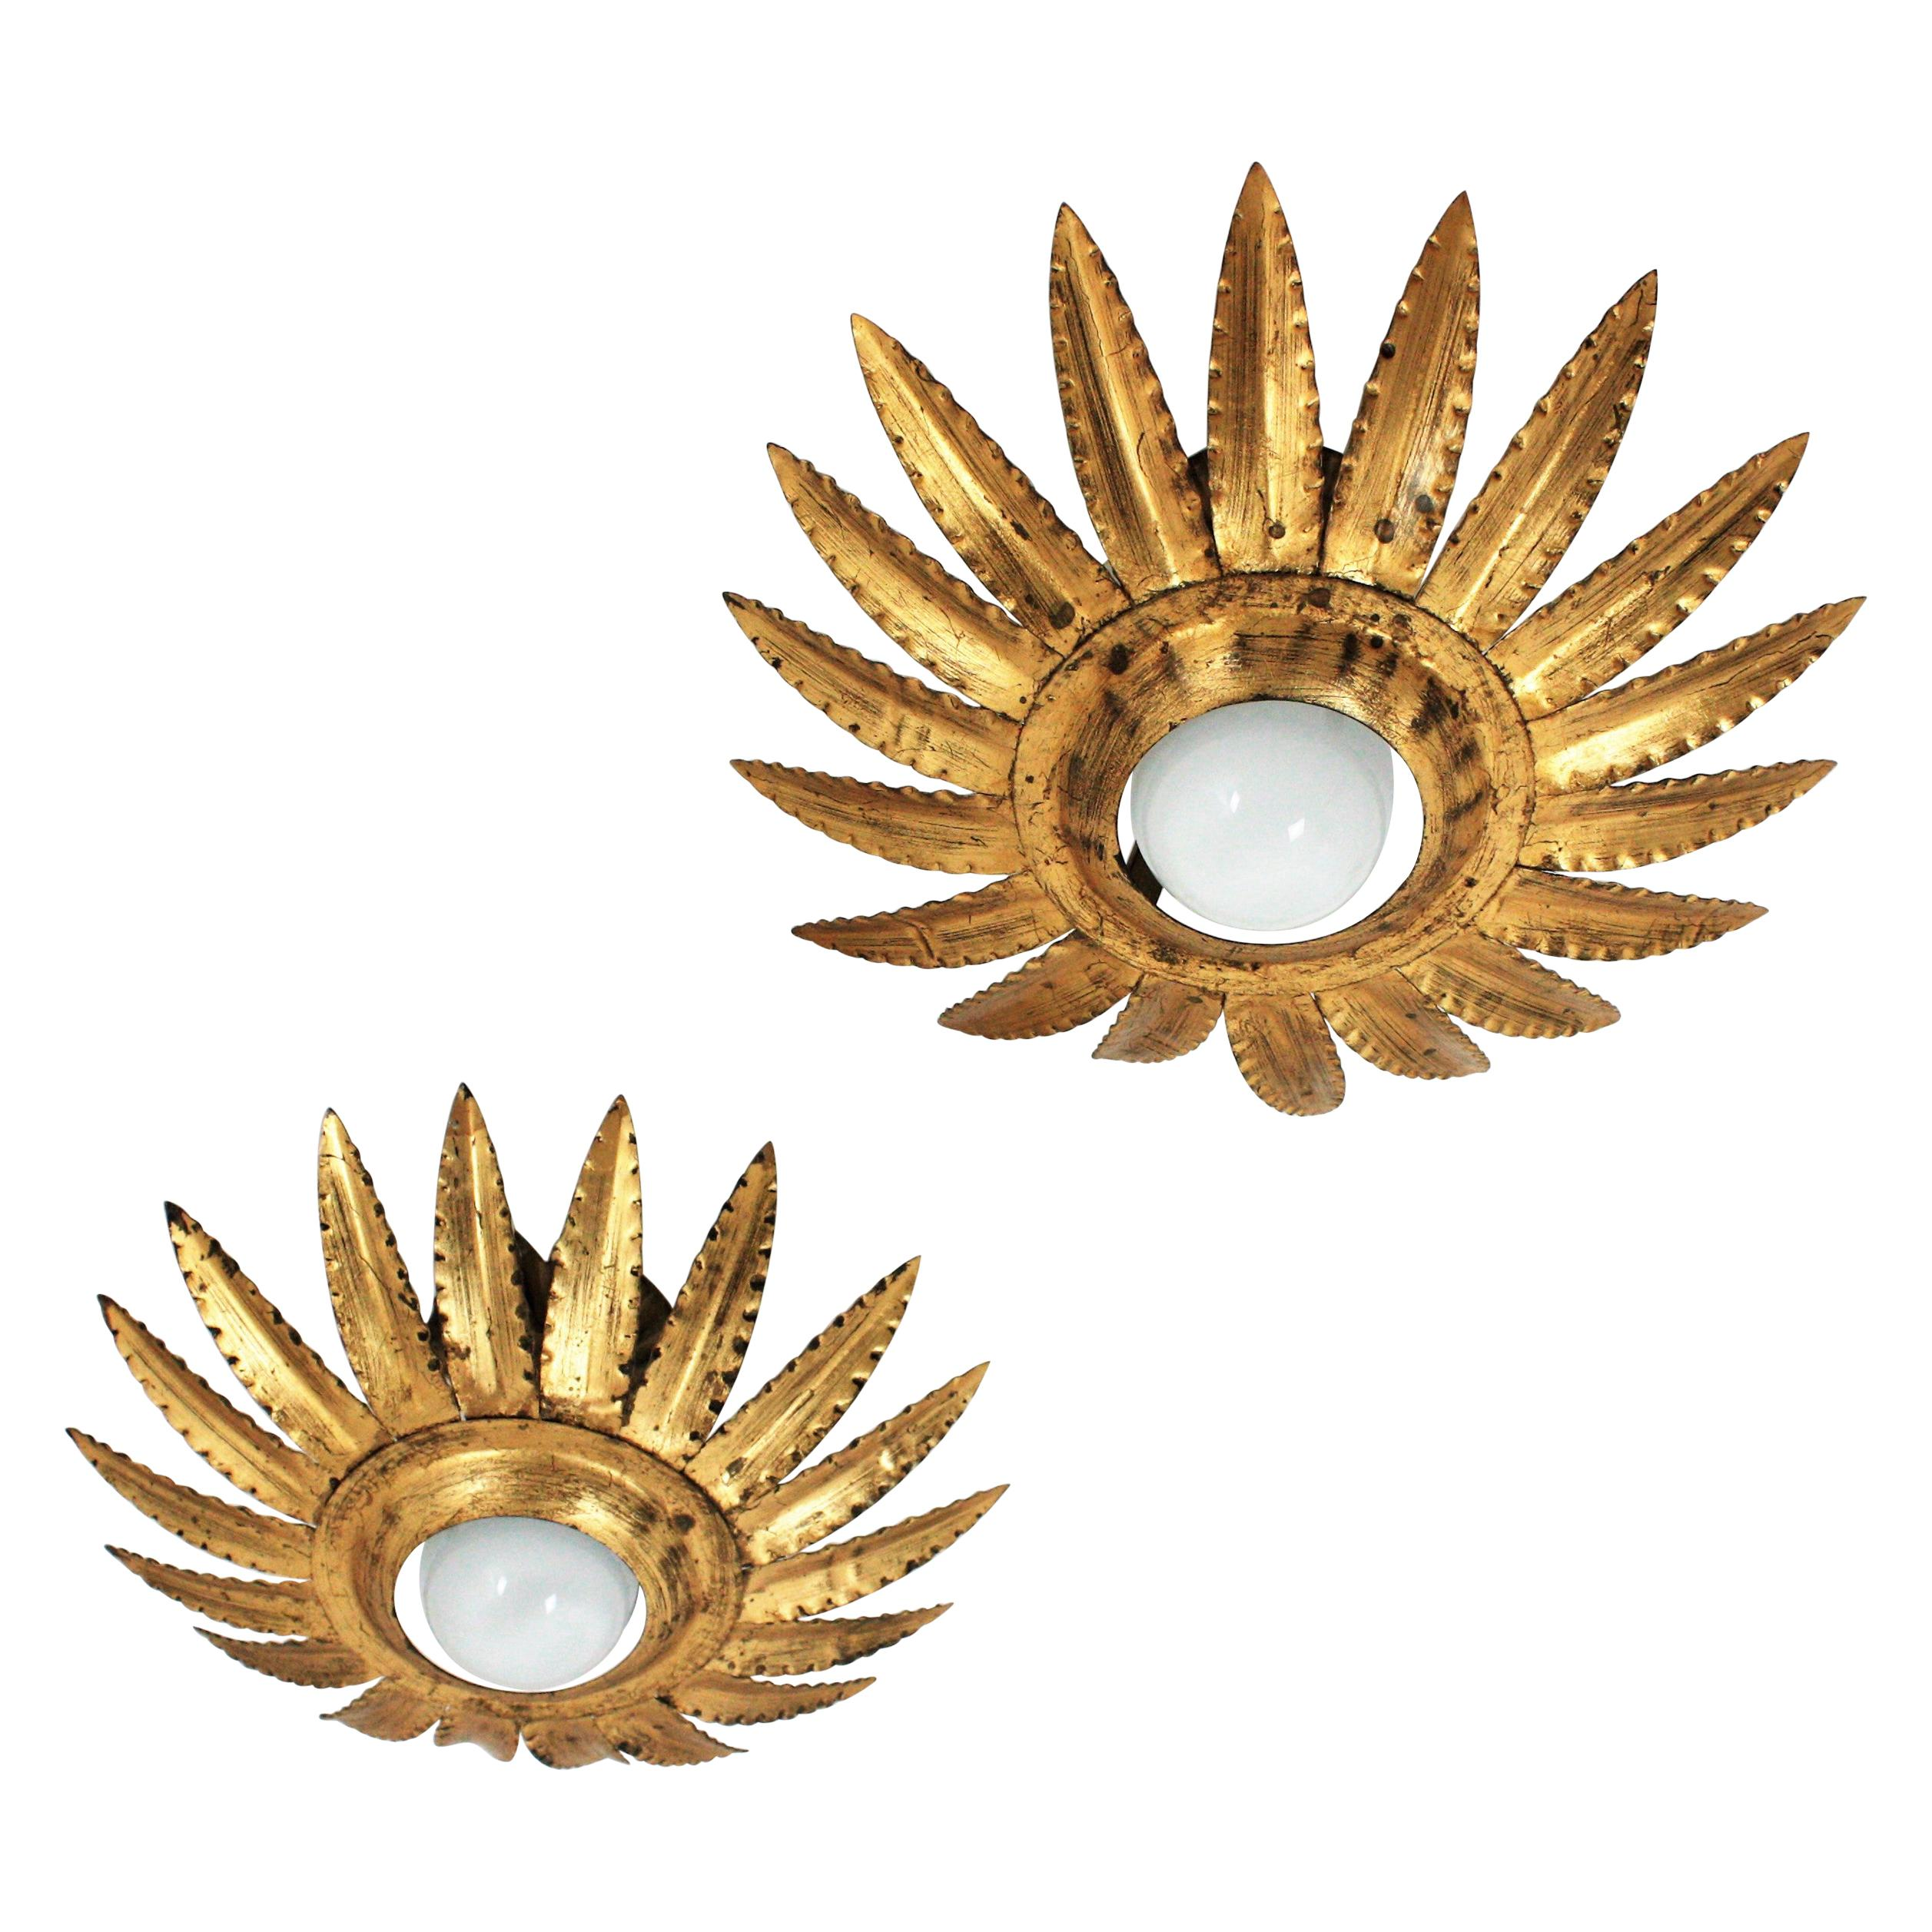 Pair of Sunburst Flower Light Fixtures or Pendants in Gilt Metal